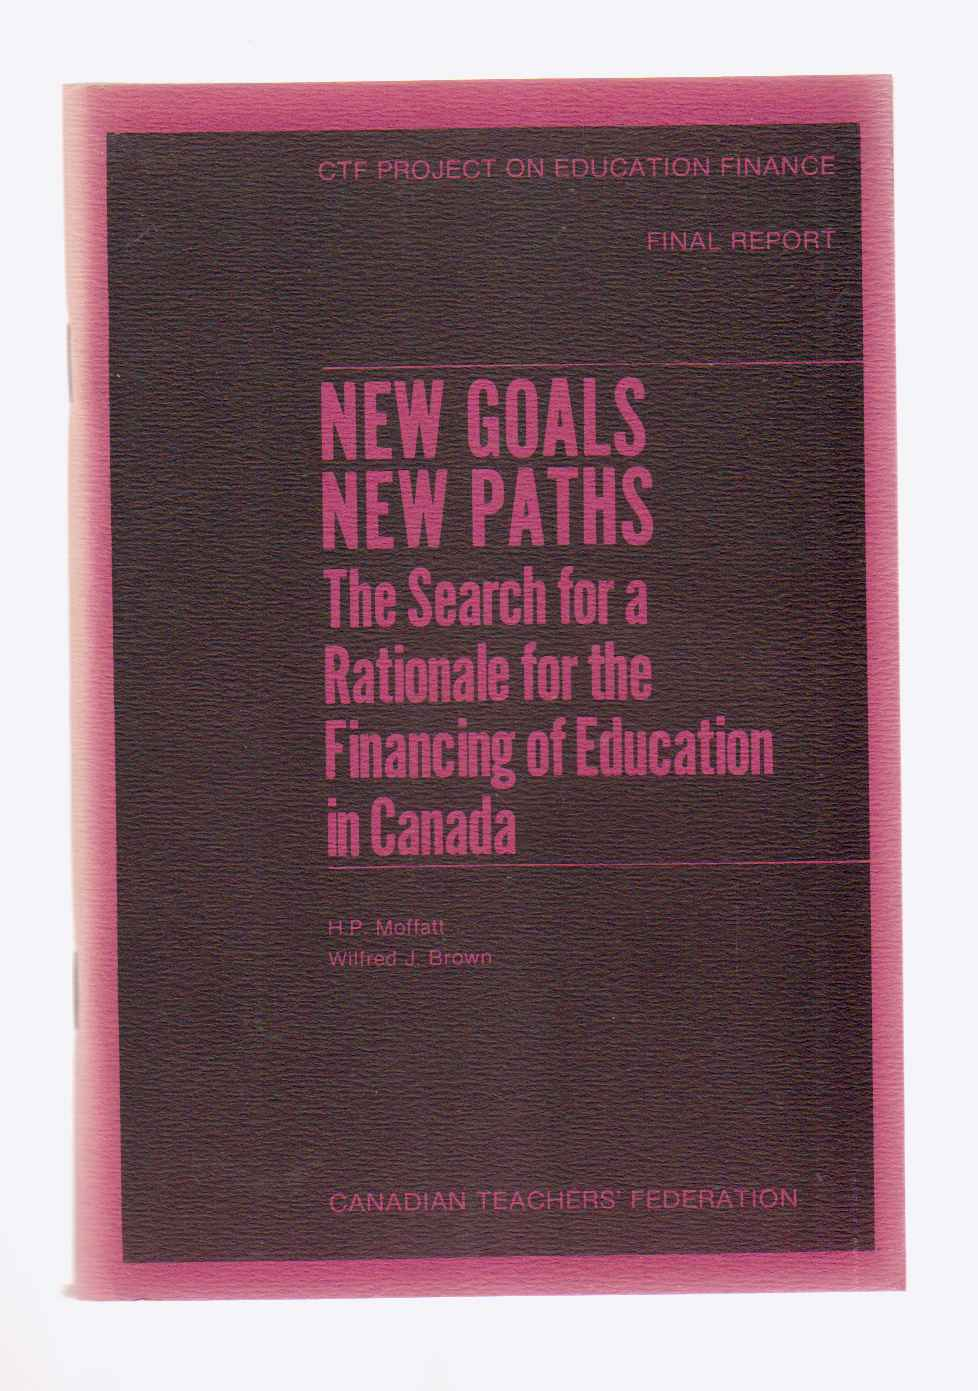 Image for New Goals New Paths The Search for a Rationale for the Financing of Education in Canada